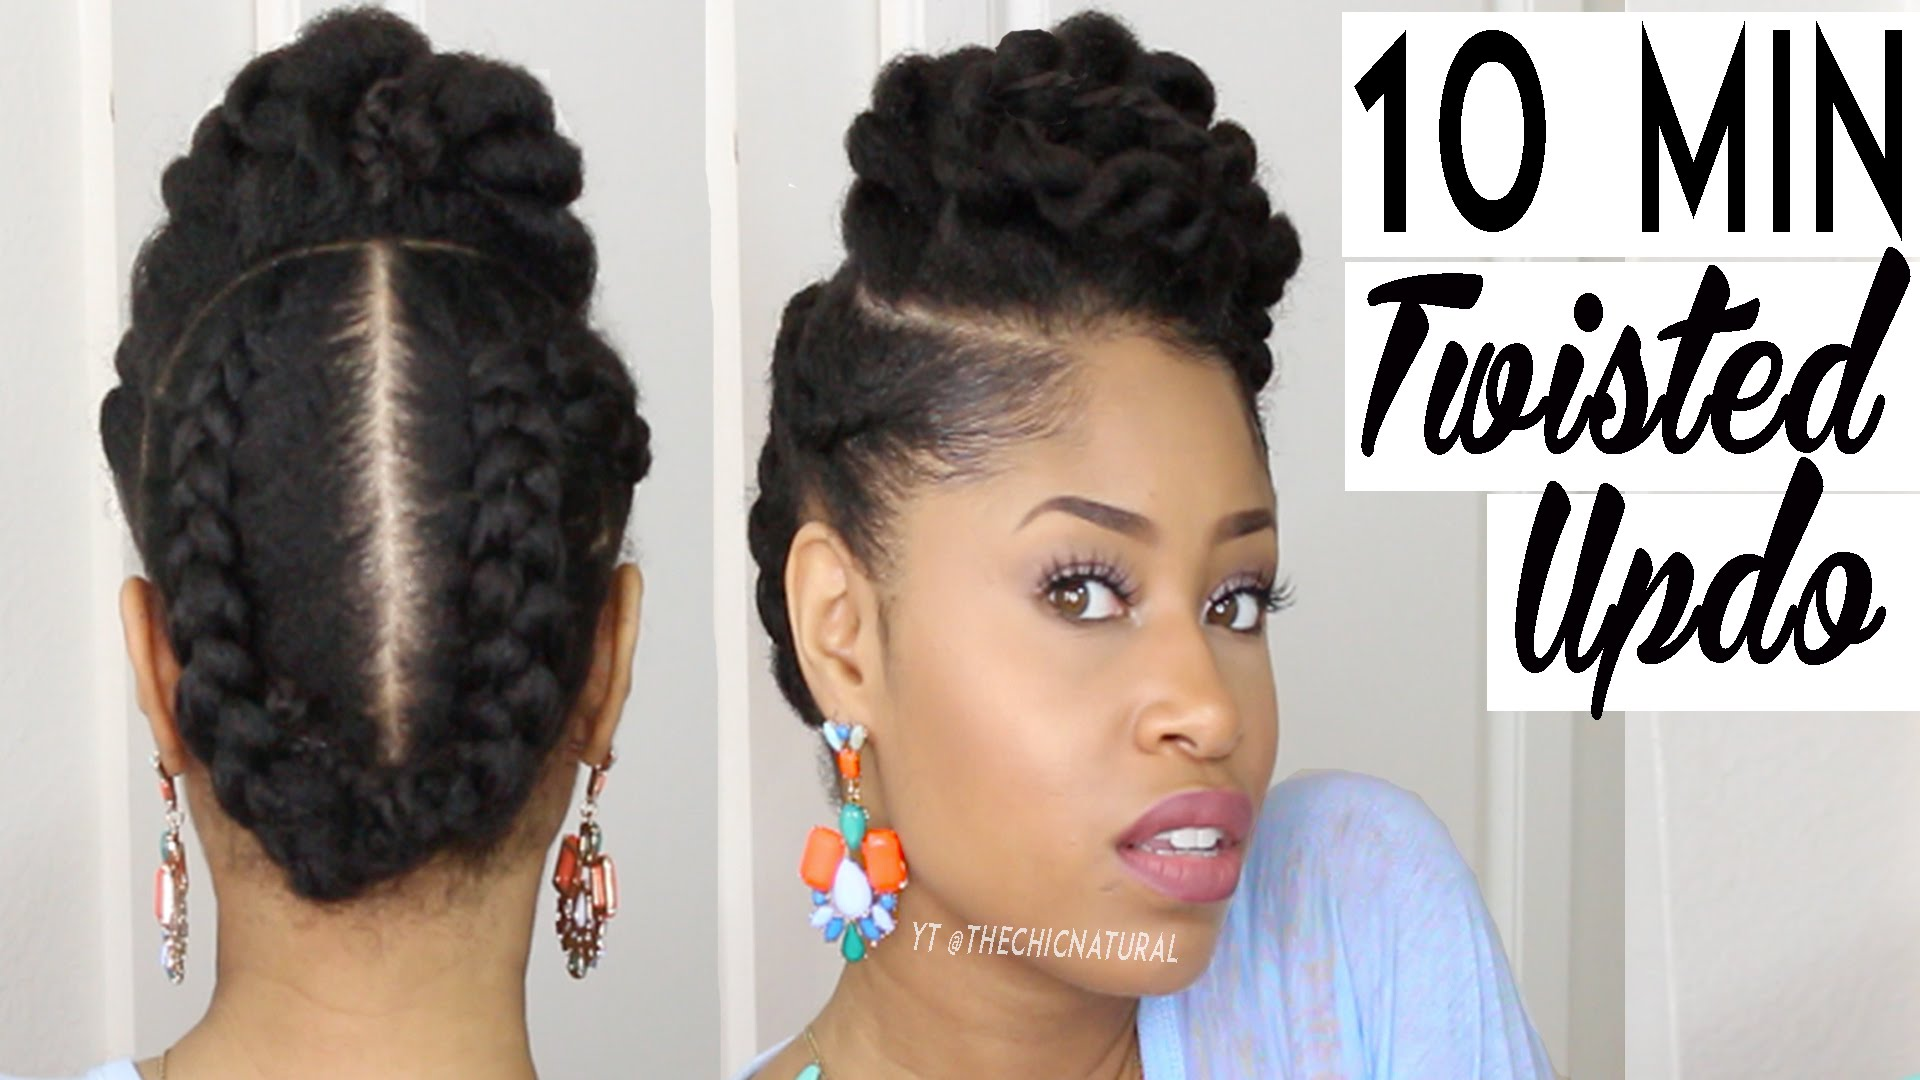 Braided Updo Styles For Natural Hair: Twisted Natural Hair Protective Updo In 10 Minutes Or Less